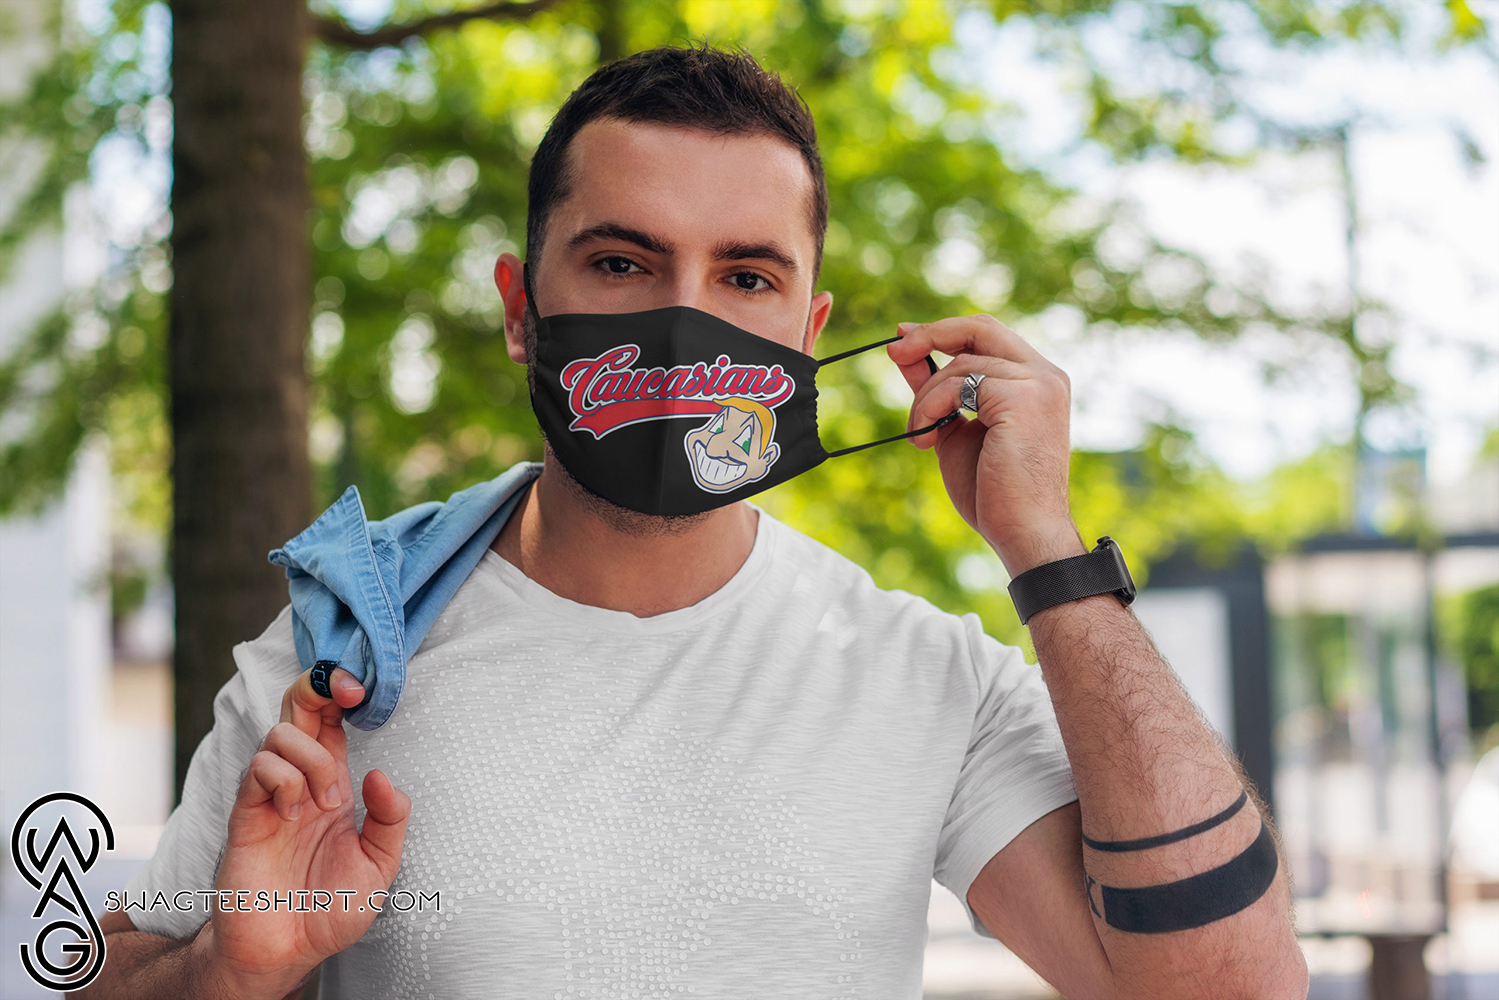 Caucasians cleveland indians full over printed face mask - maria